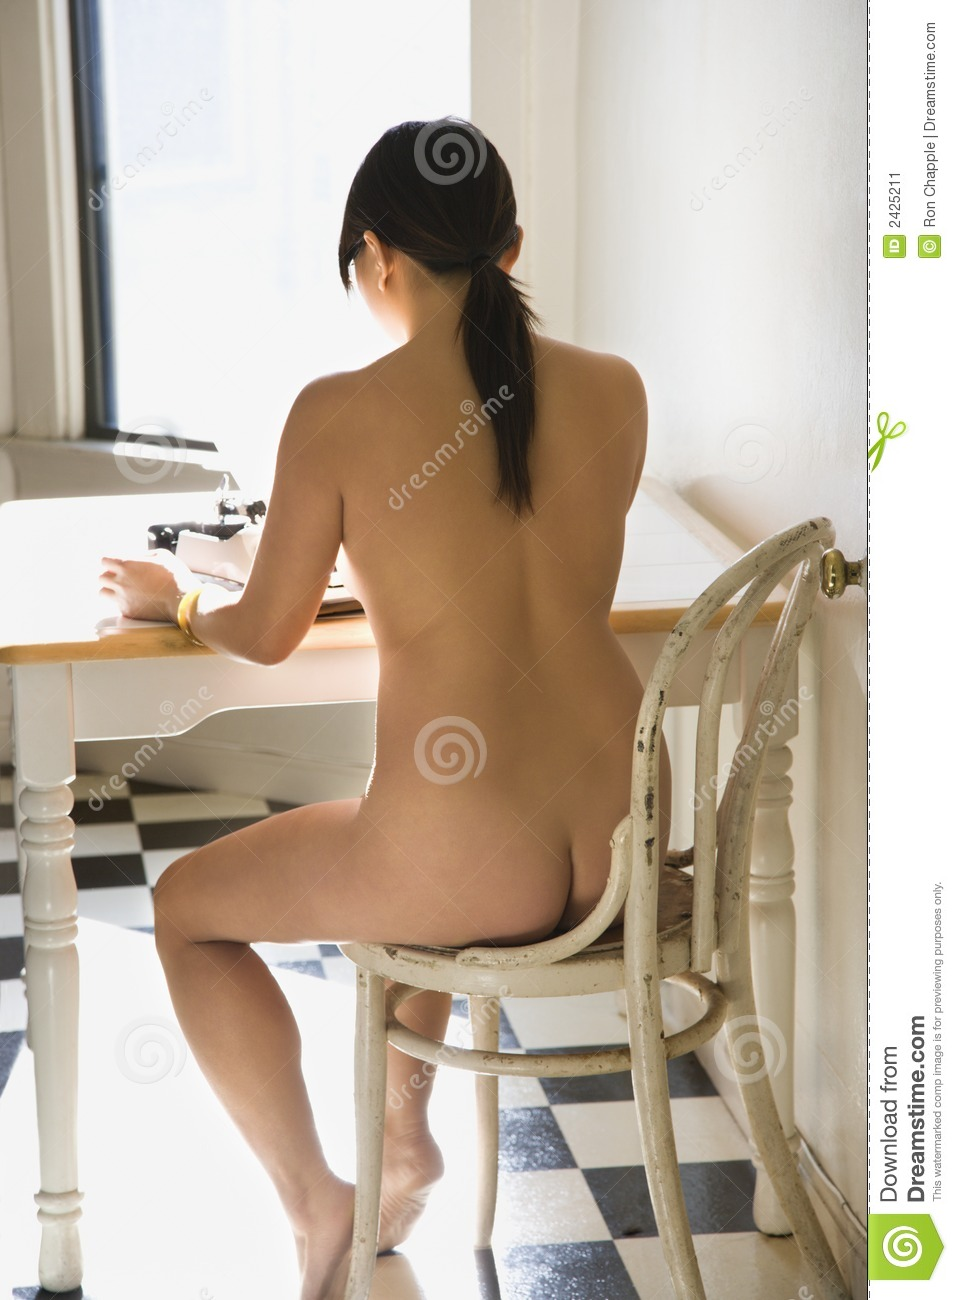 Nude Woman Typing Stock Image - Image 2425211-8781